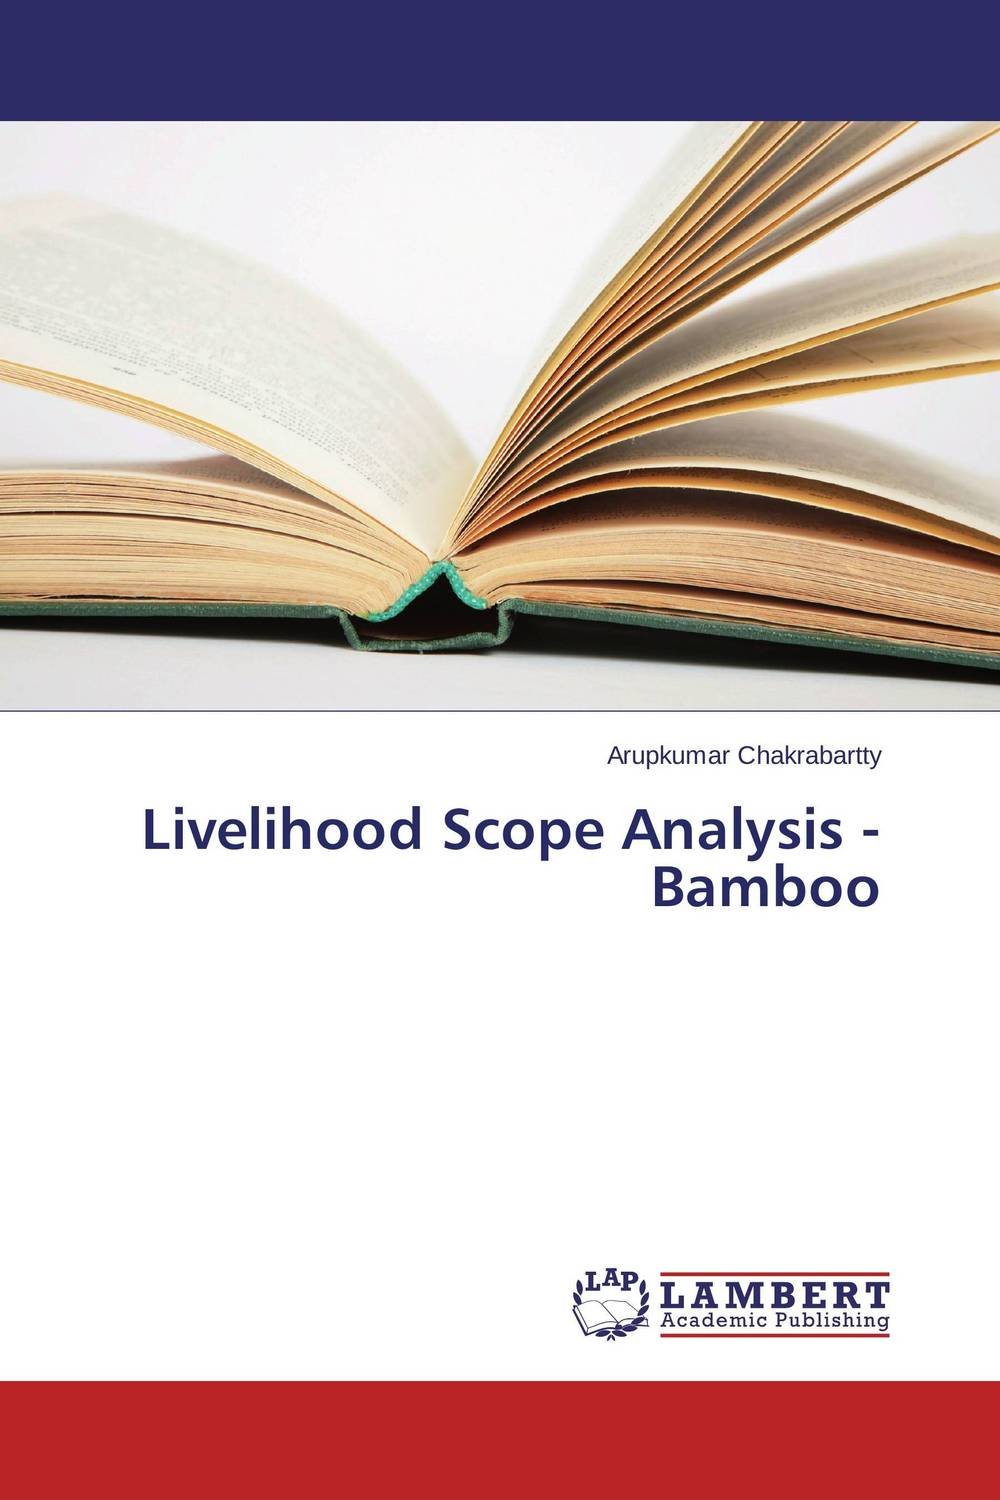 Livelihood Scope Analysis -Bamboo affair of state an